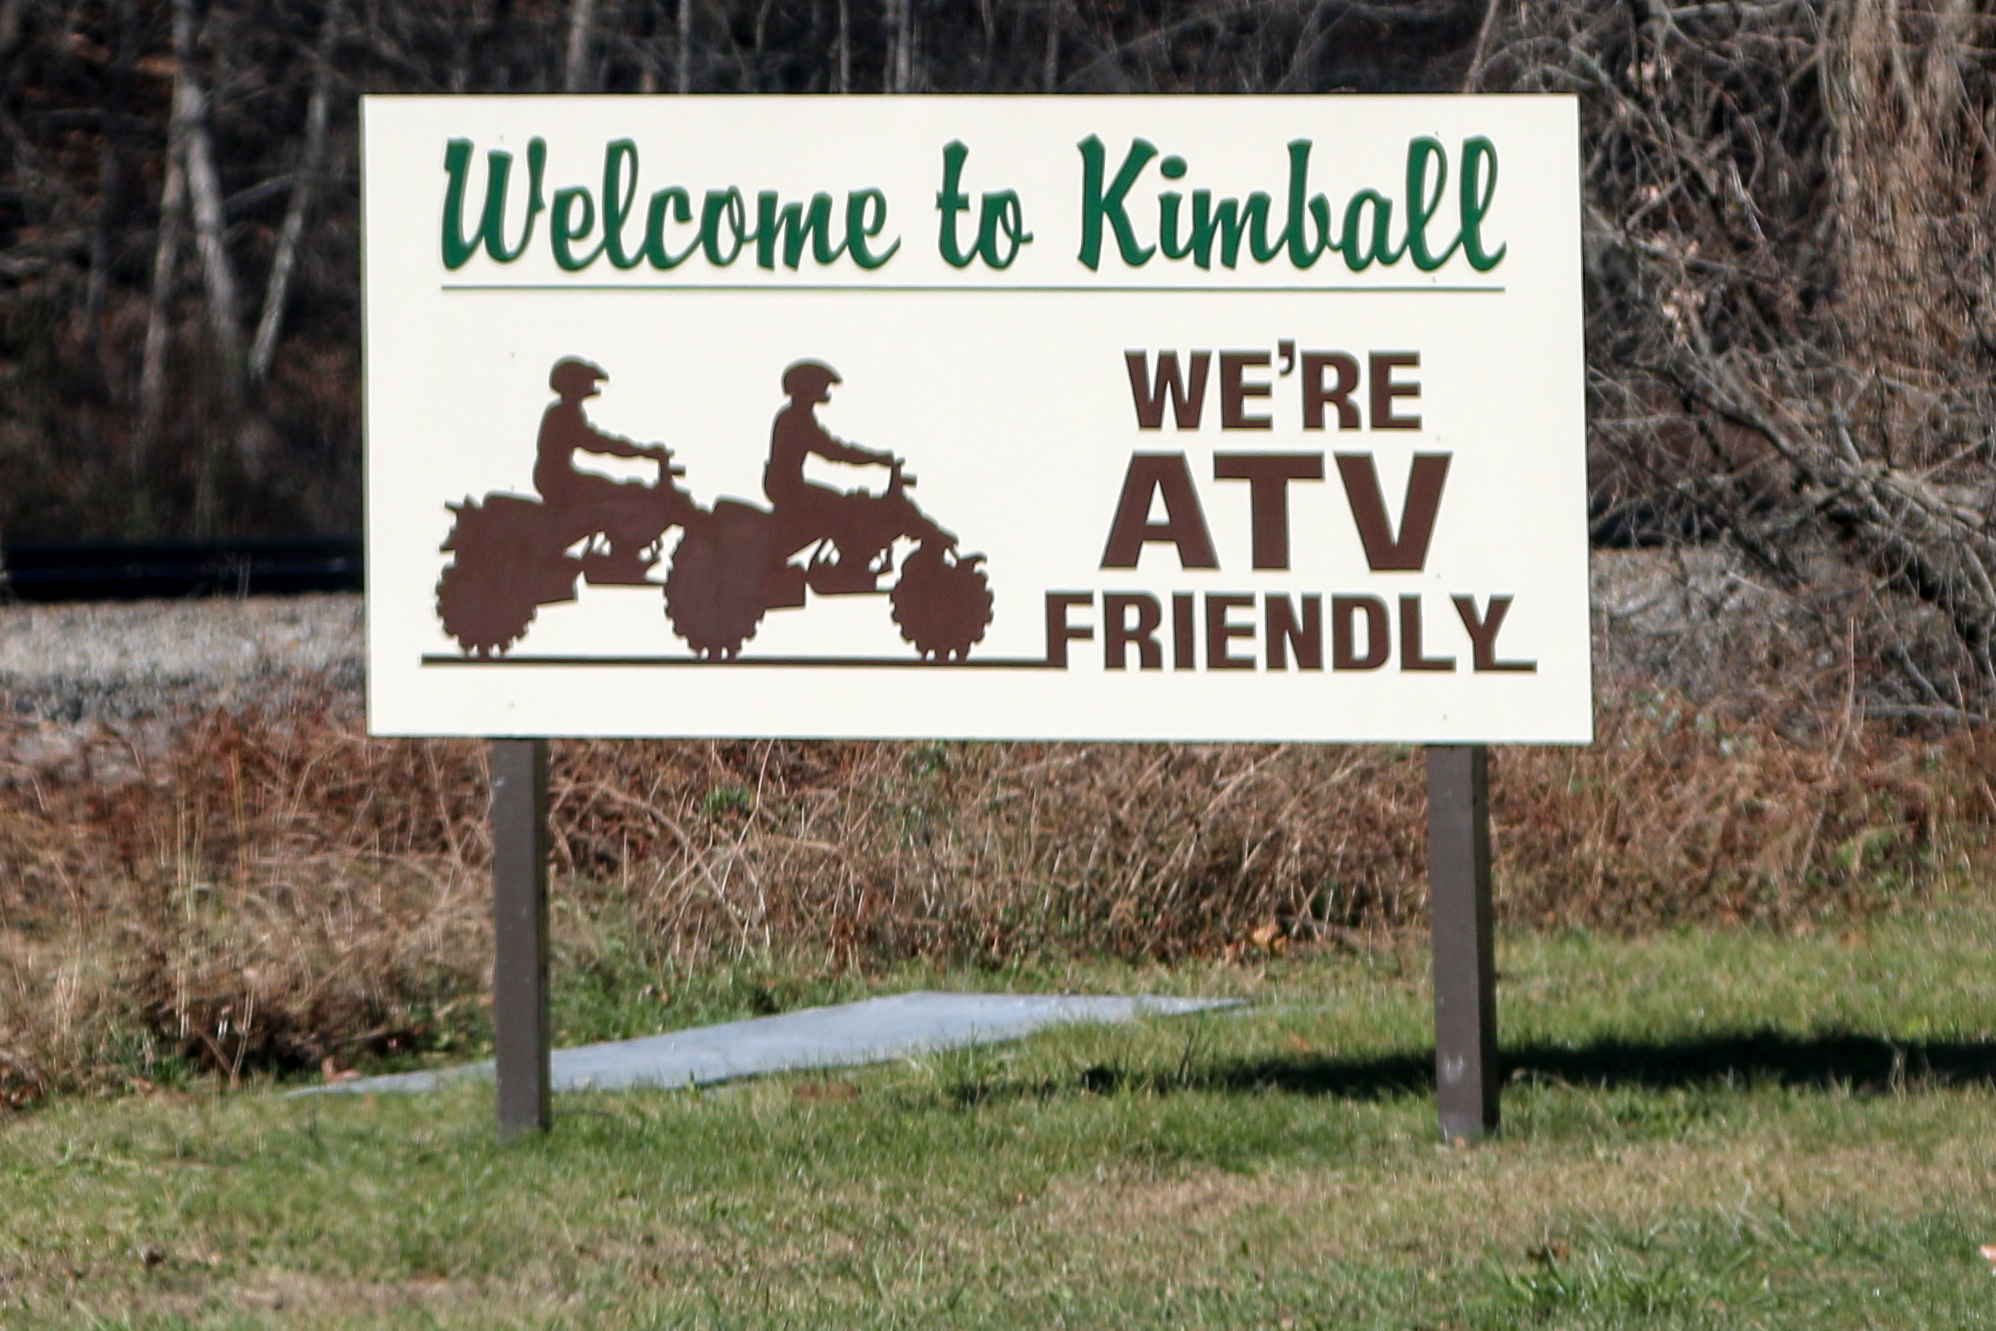 Most Towns Were ATV Friendly